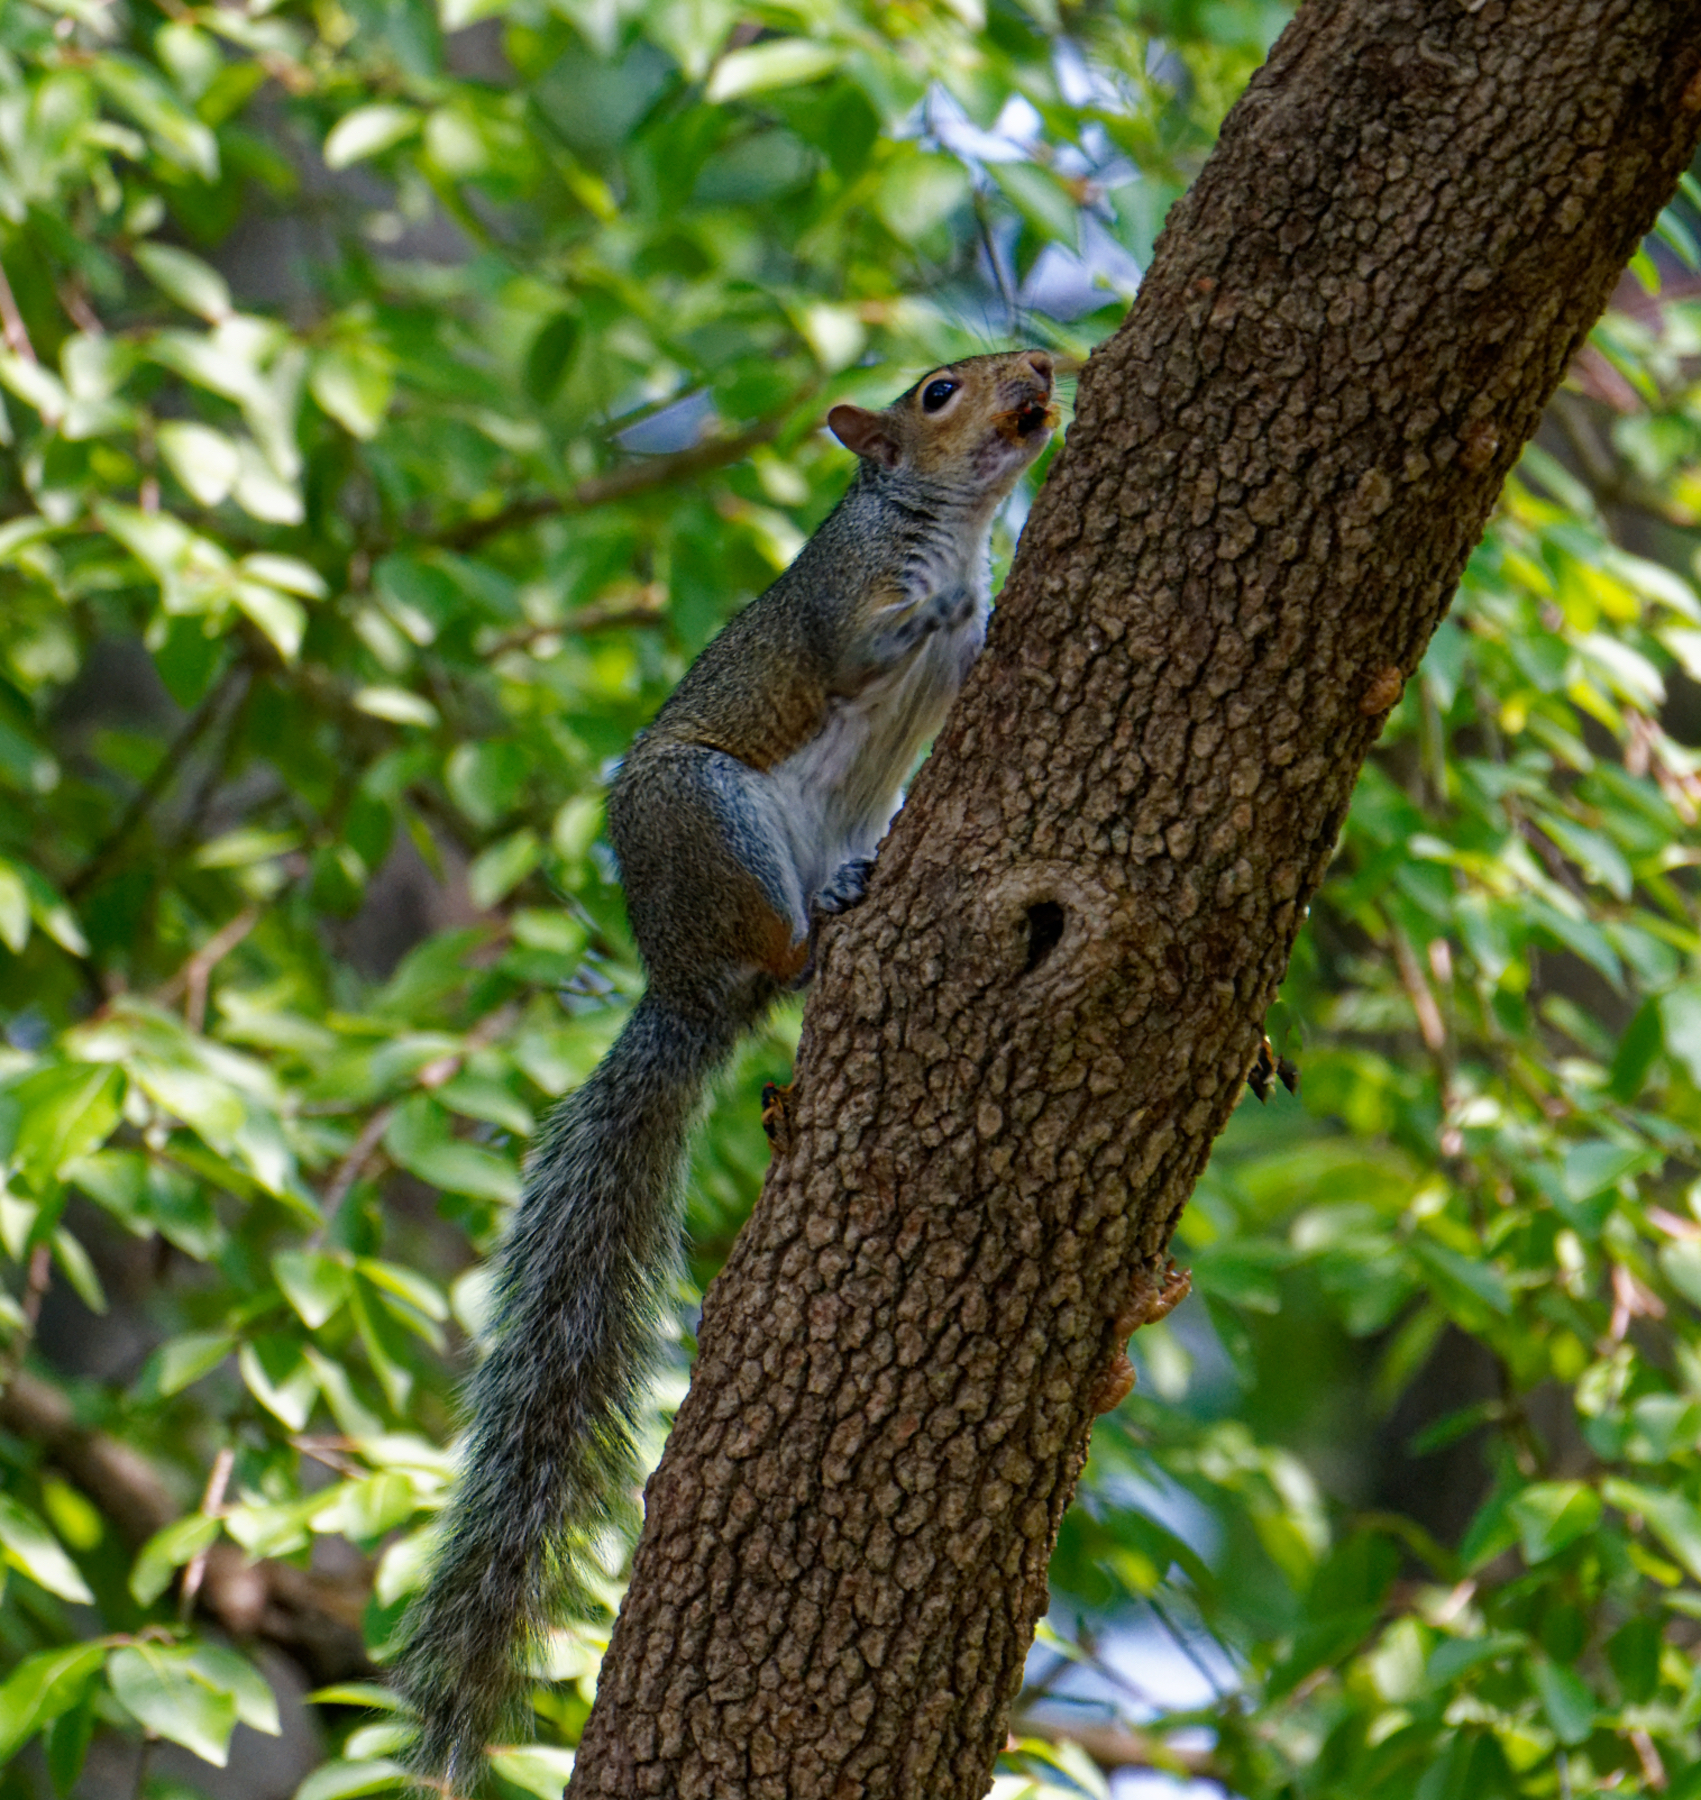 Squirrel With a Mouthful of Crunchy Treat.jpeg